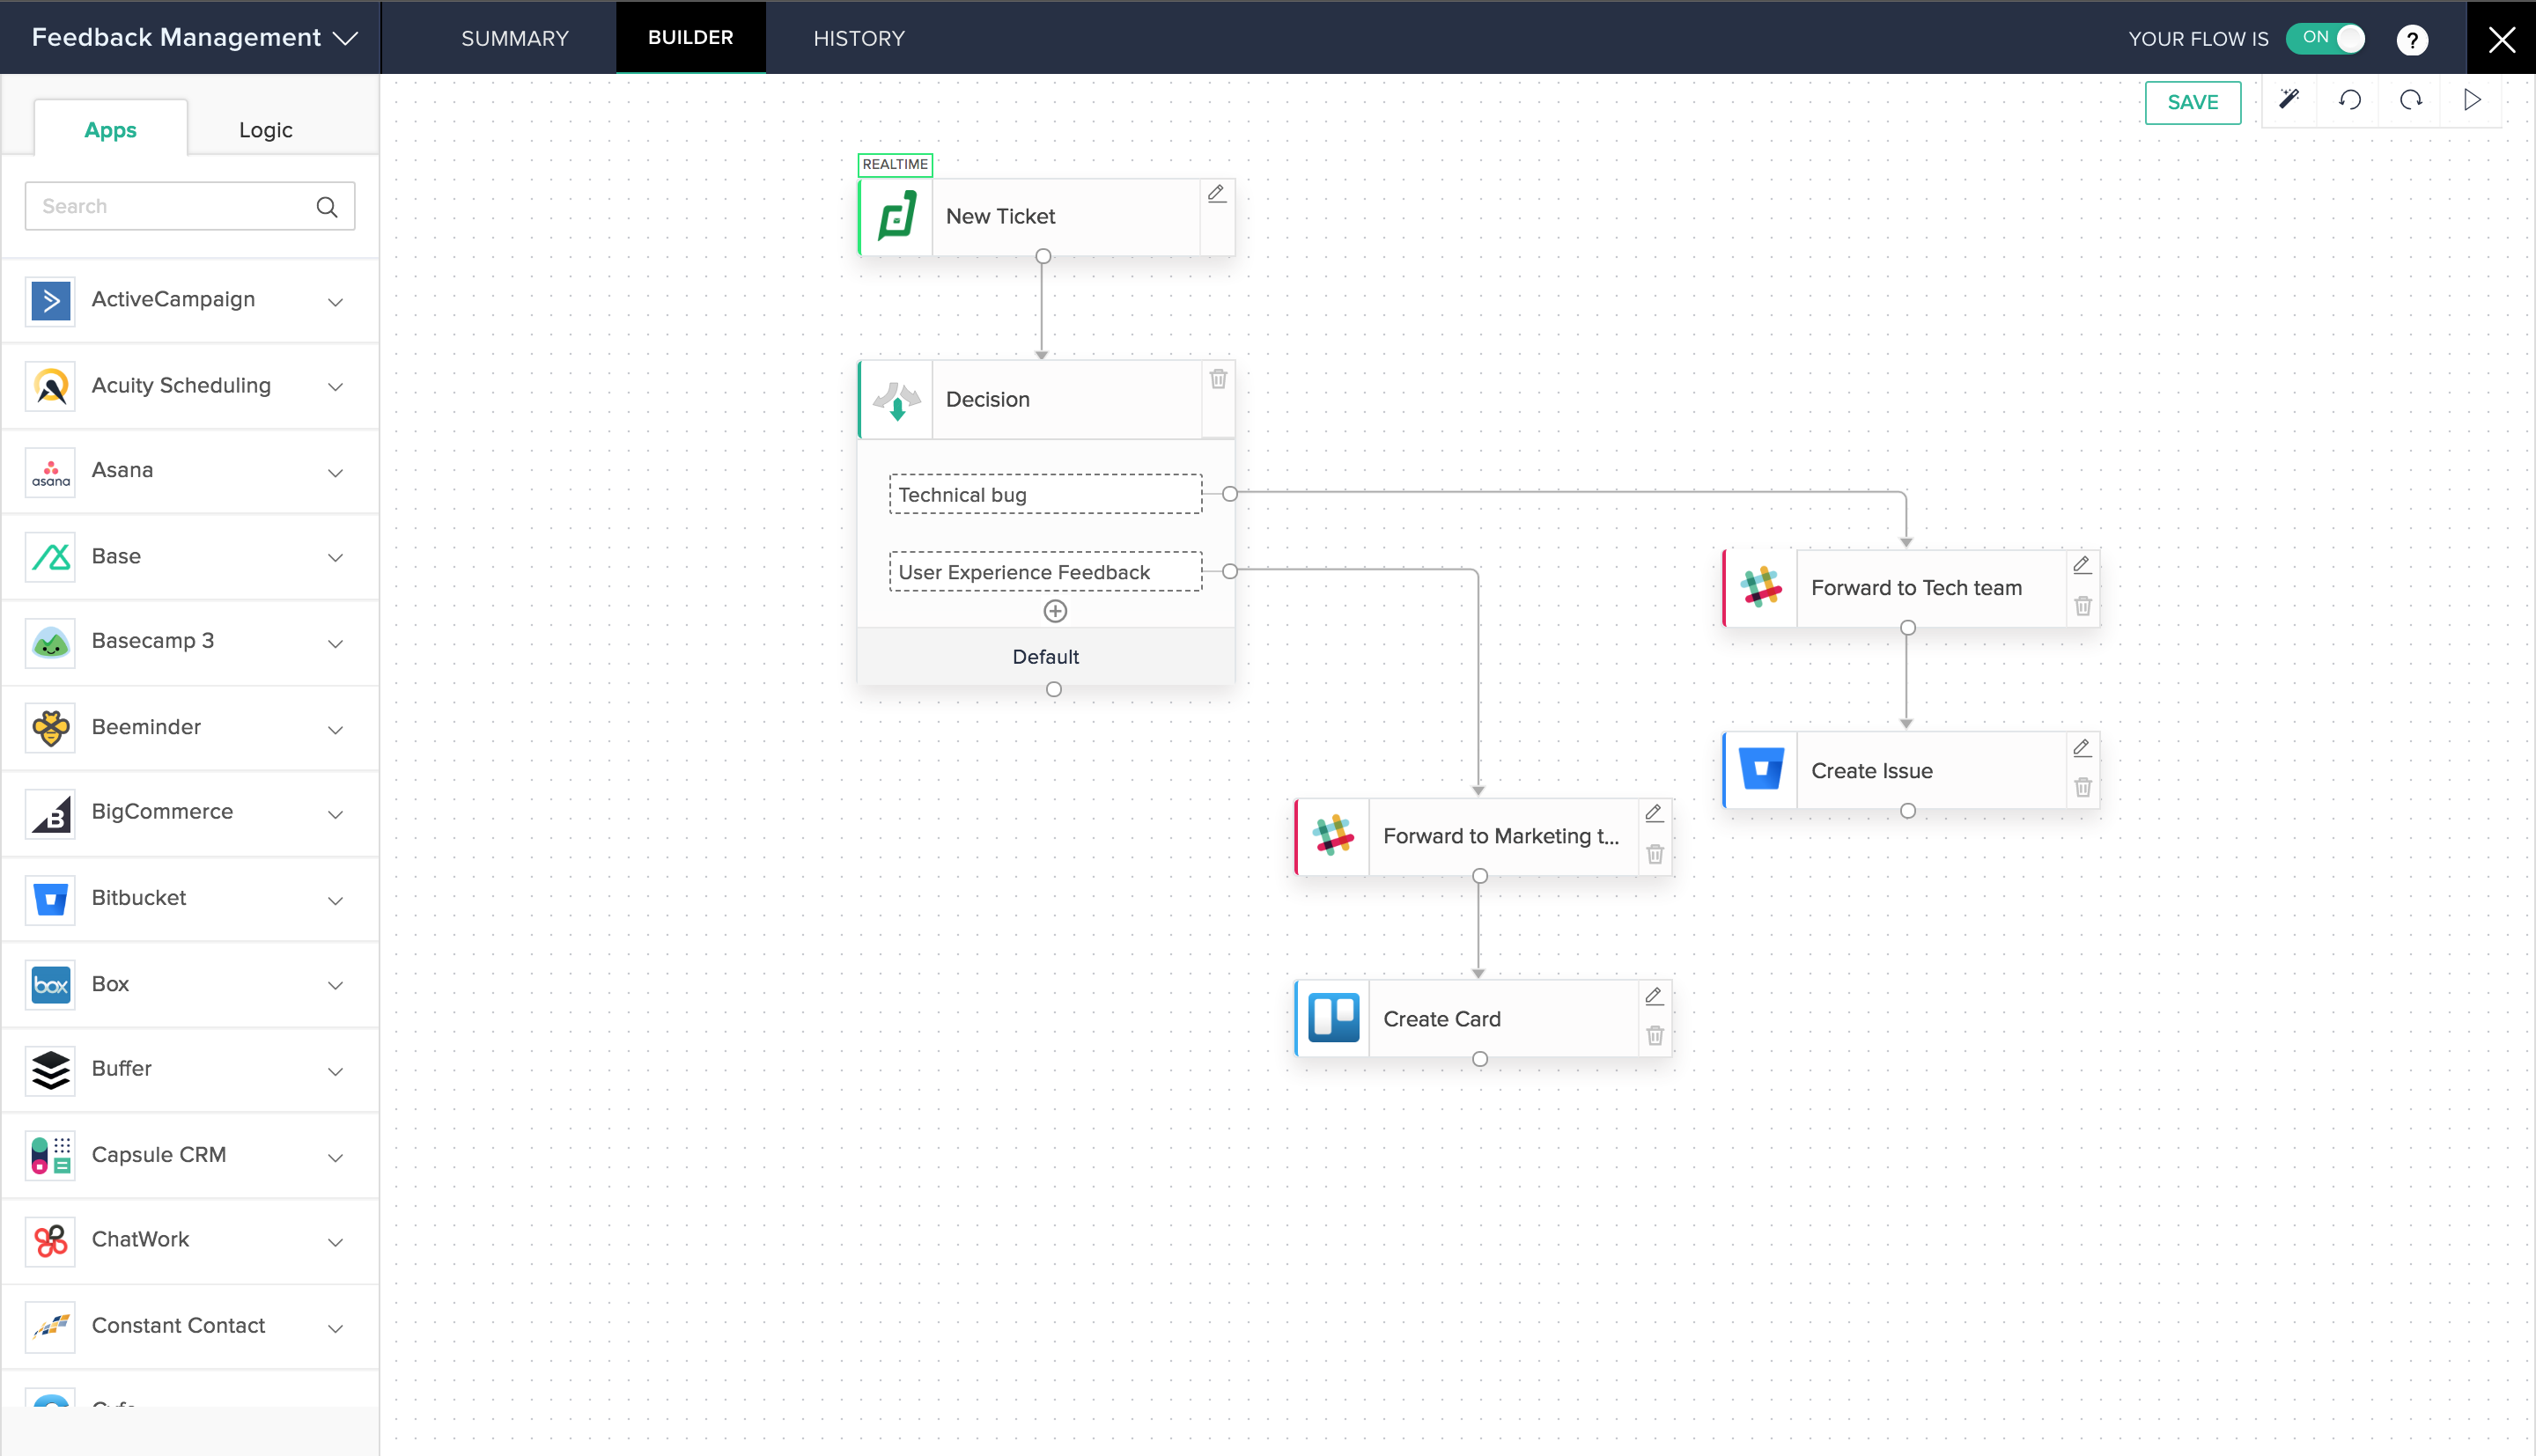 Zoho-Third Party Integrations on Zoho Flow